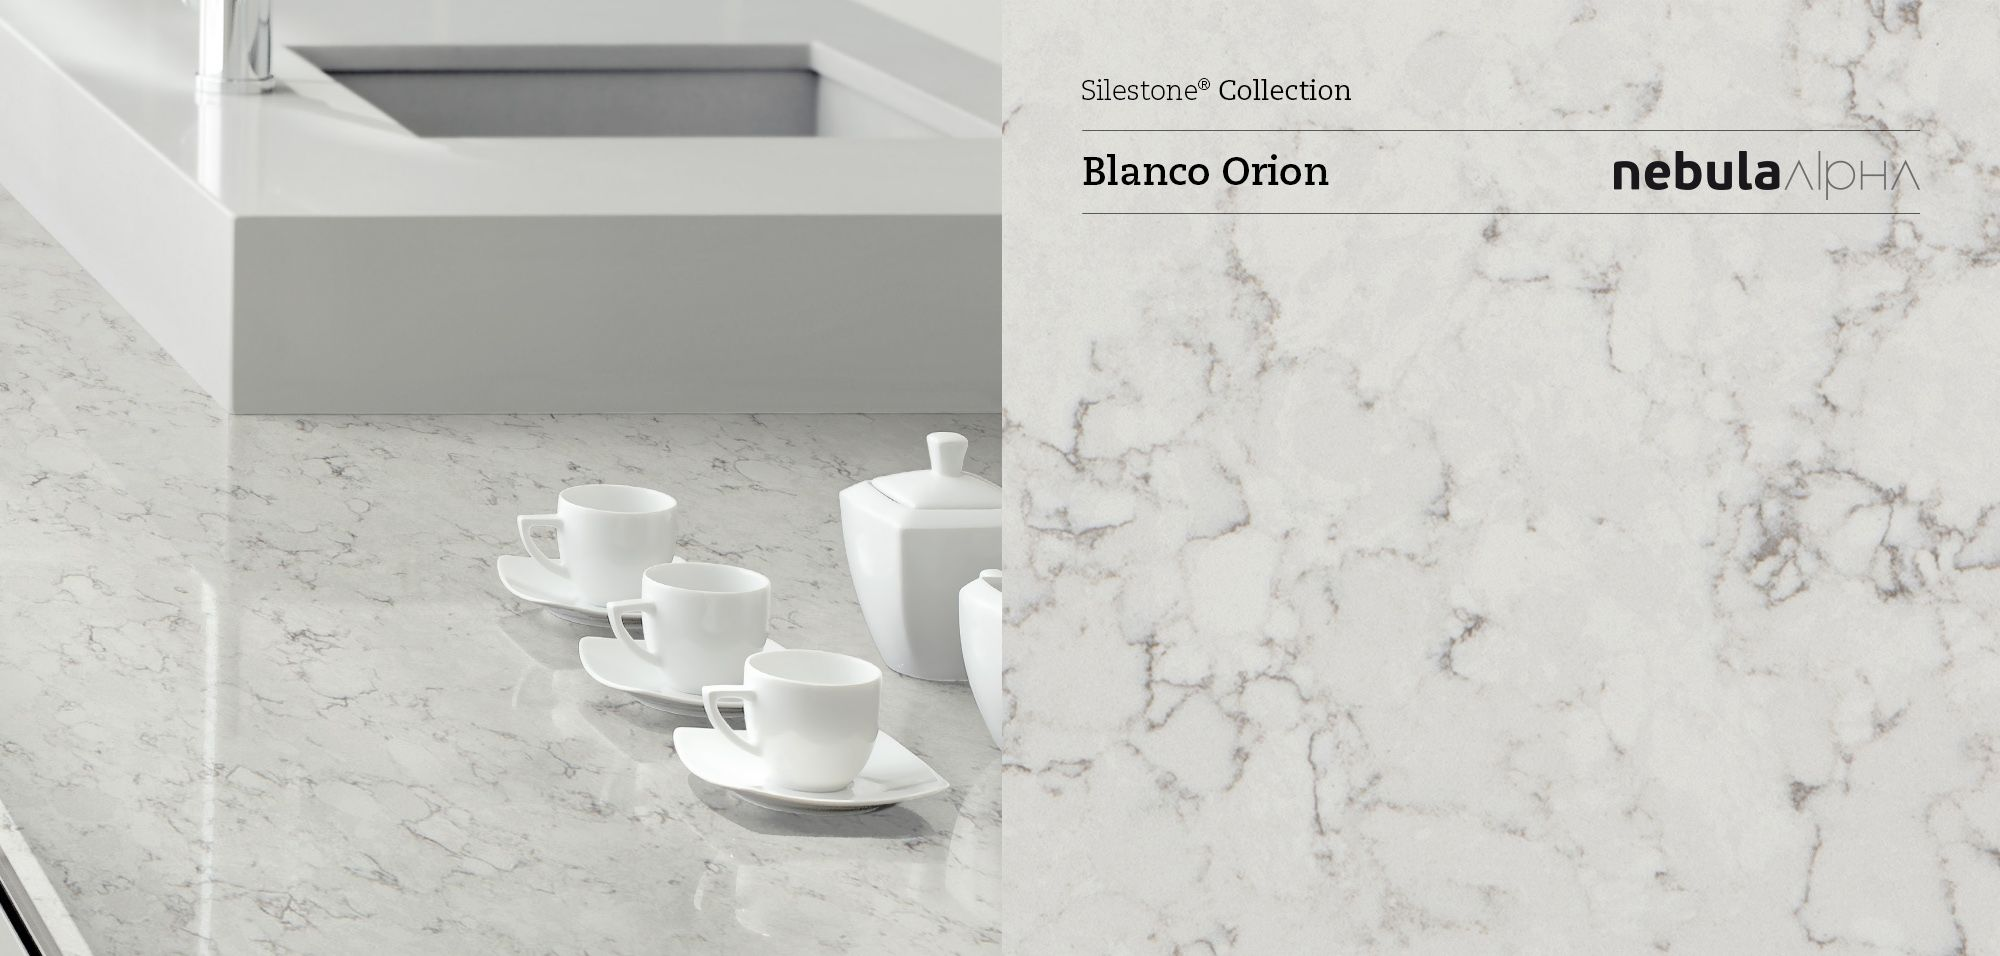 Silestone Blanco Orion Silestone Nebula Alpha Pinterest Kitchens Countertops And Countertop